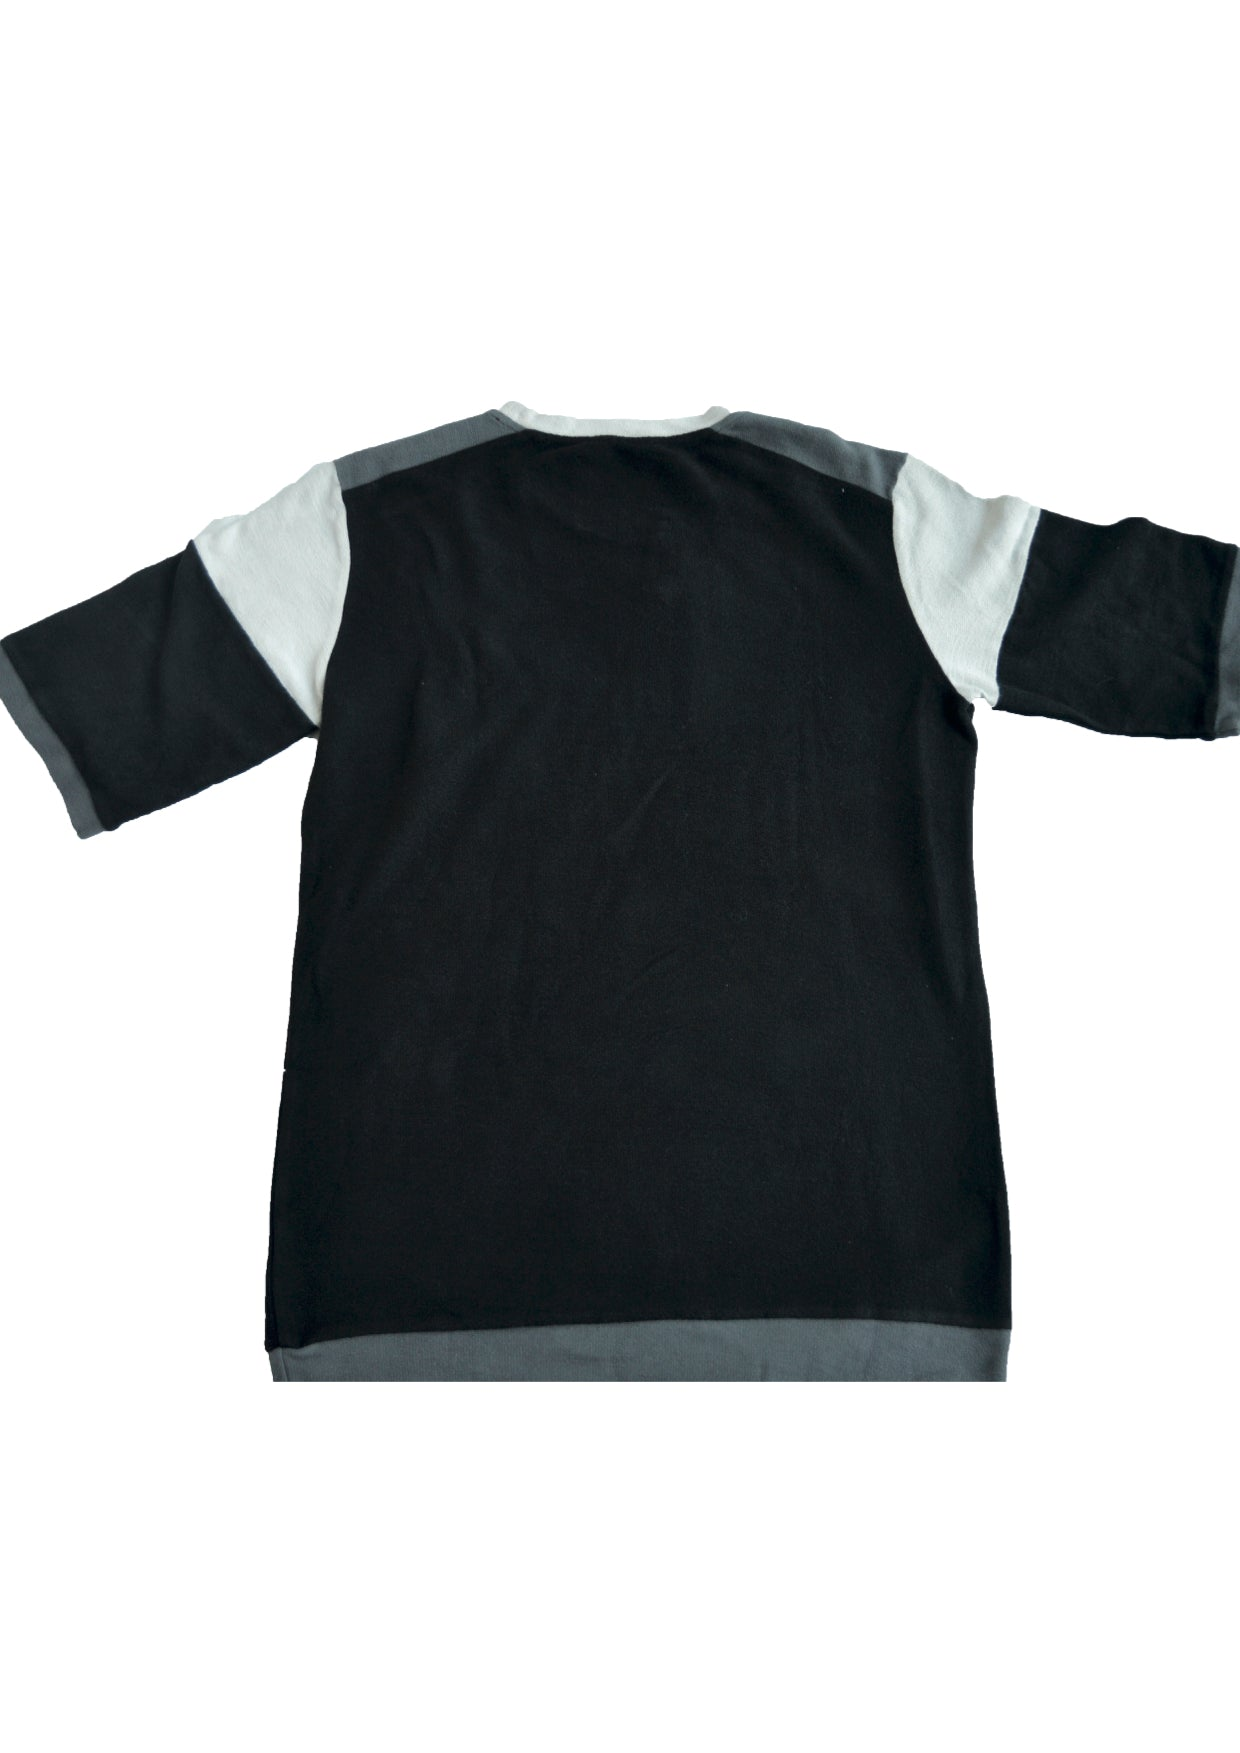 SS15 tee - black/white/grey